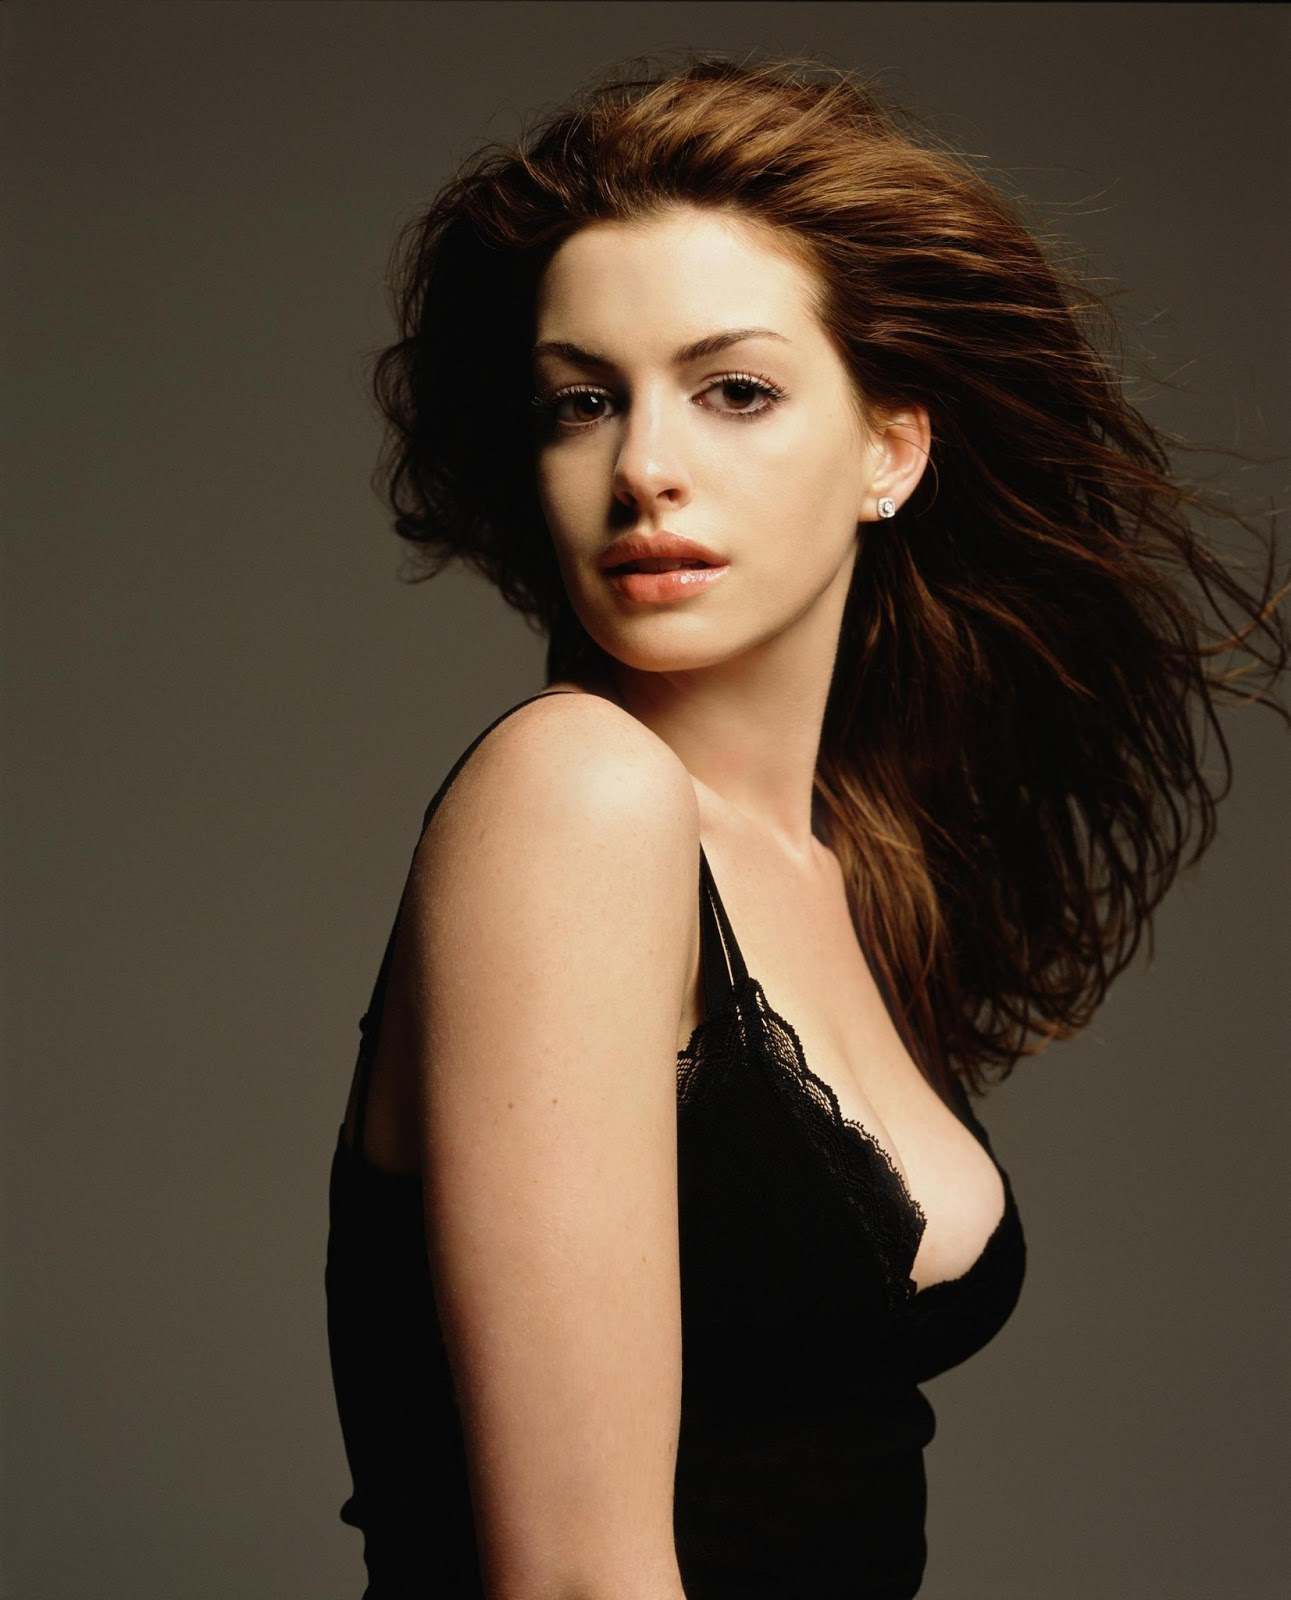 Im im images of anne hathaway -